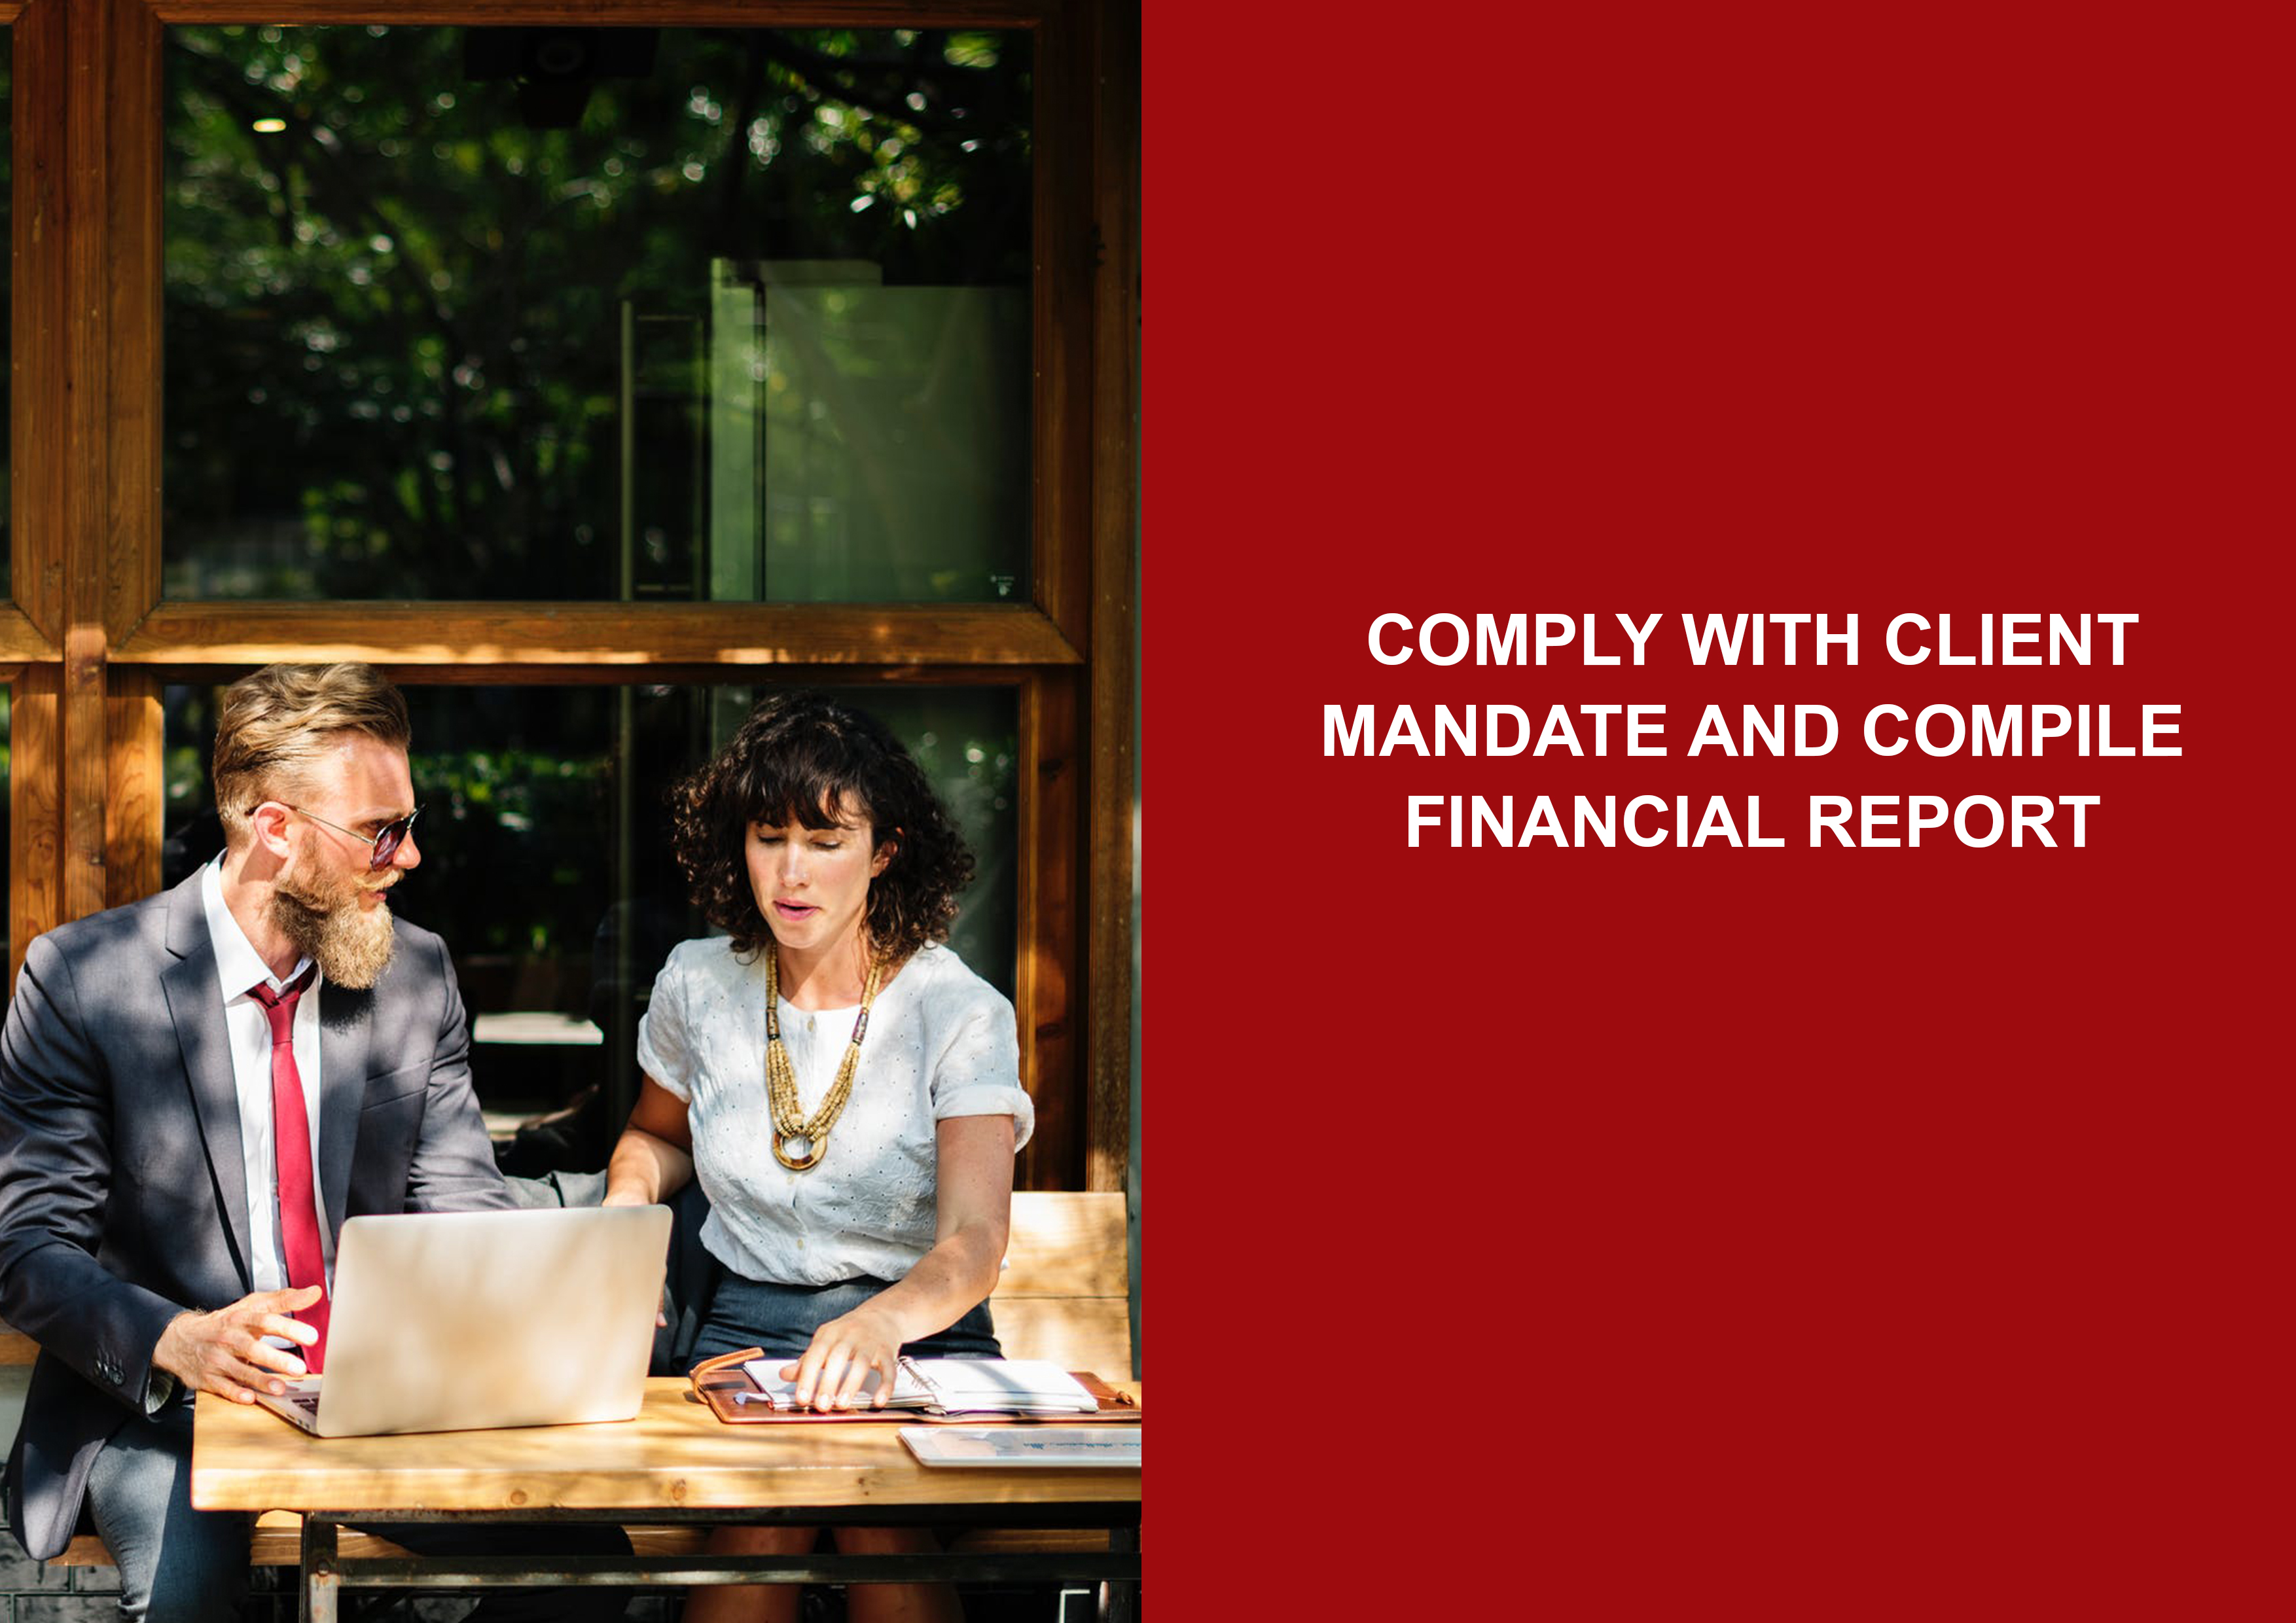 Comply with Client Mandate and Compile Financial Report